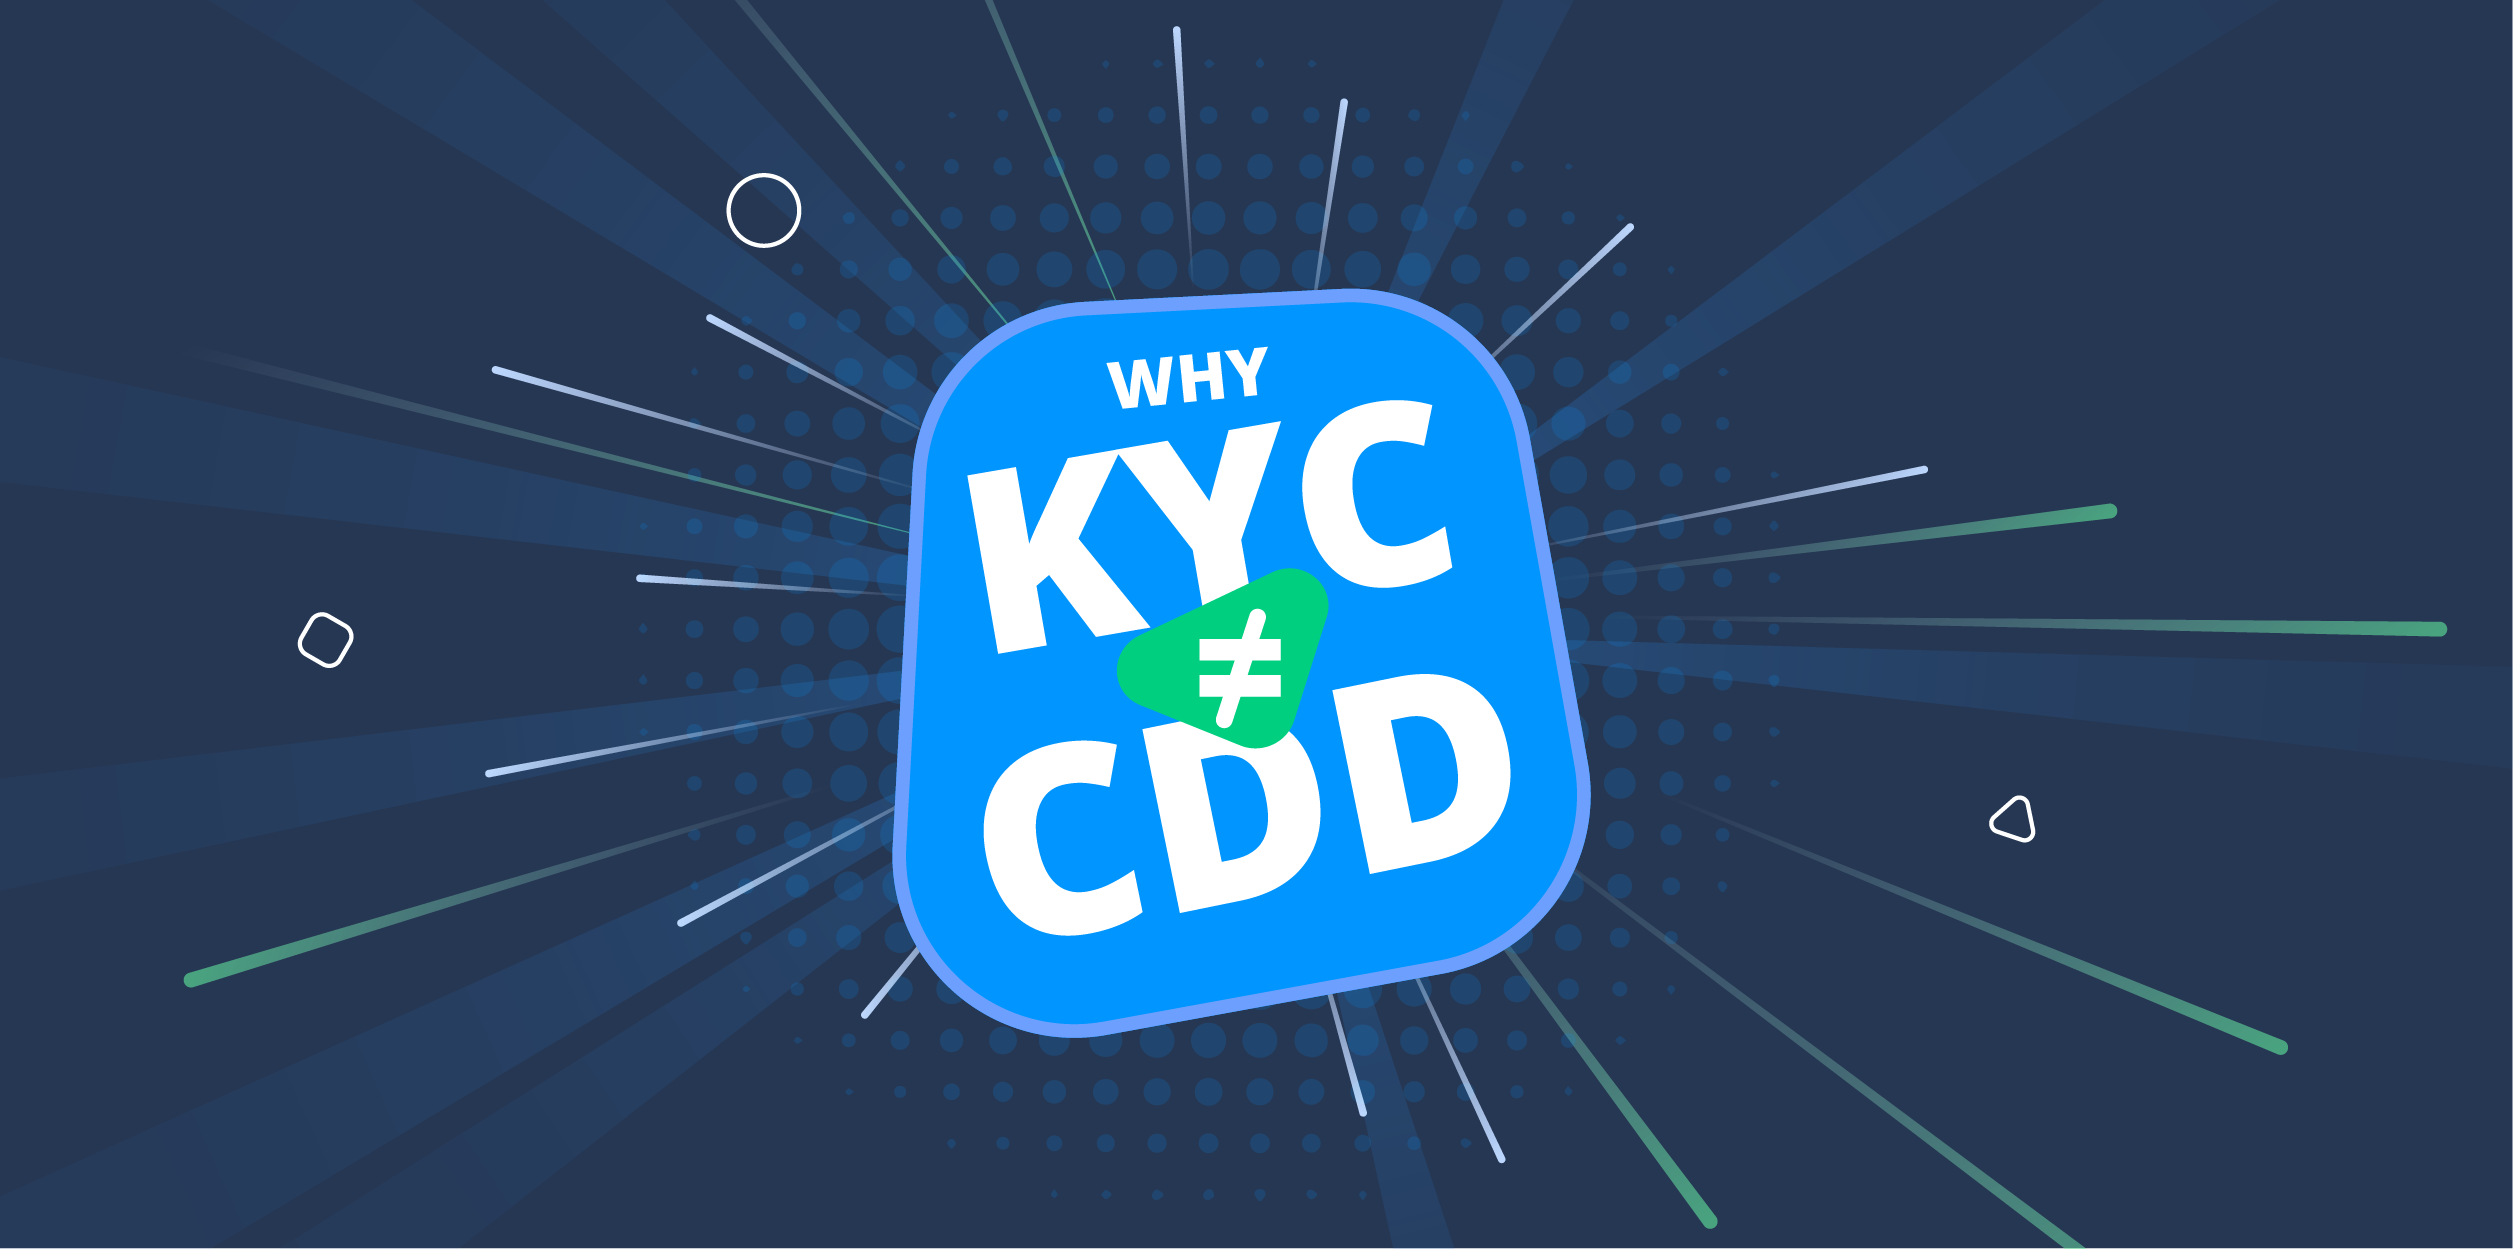 What's the difference between KYC and CDD